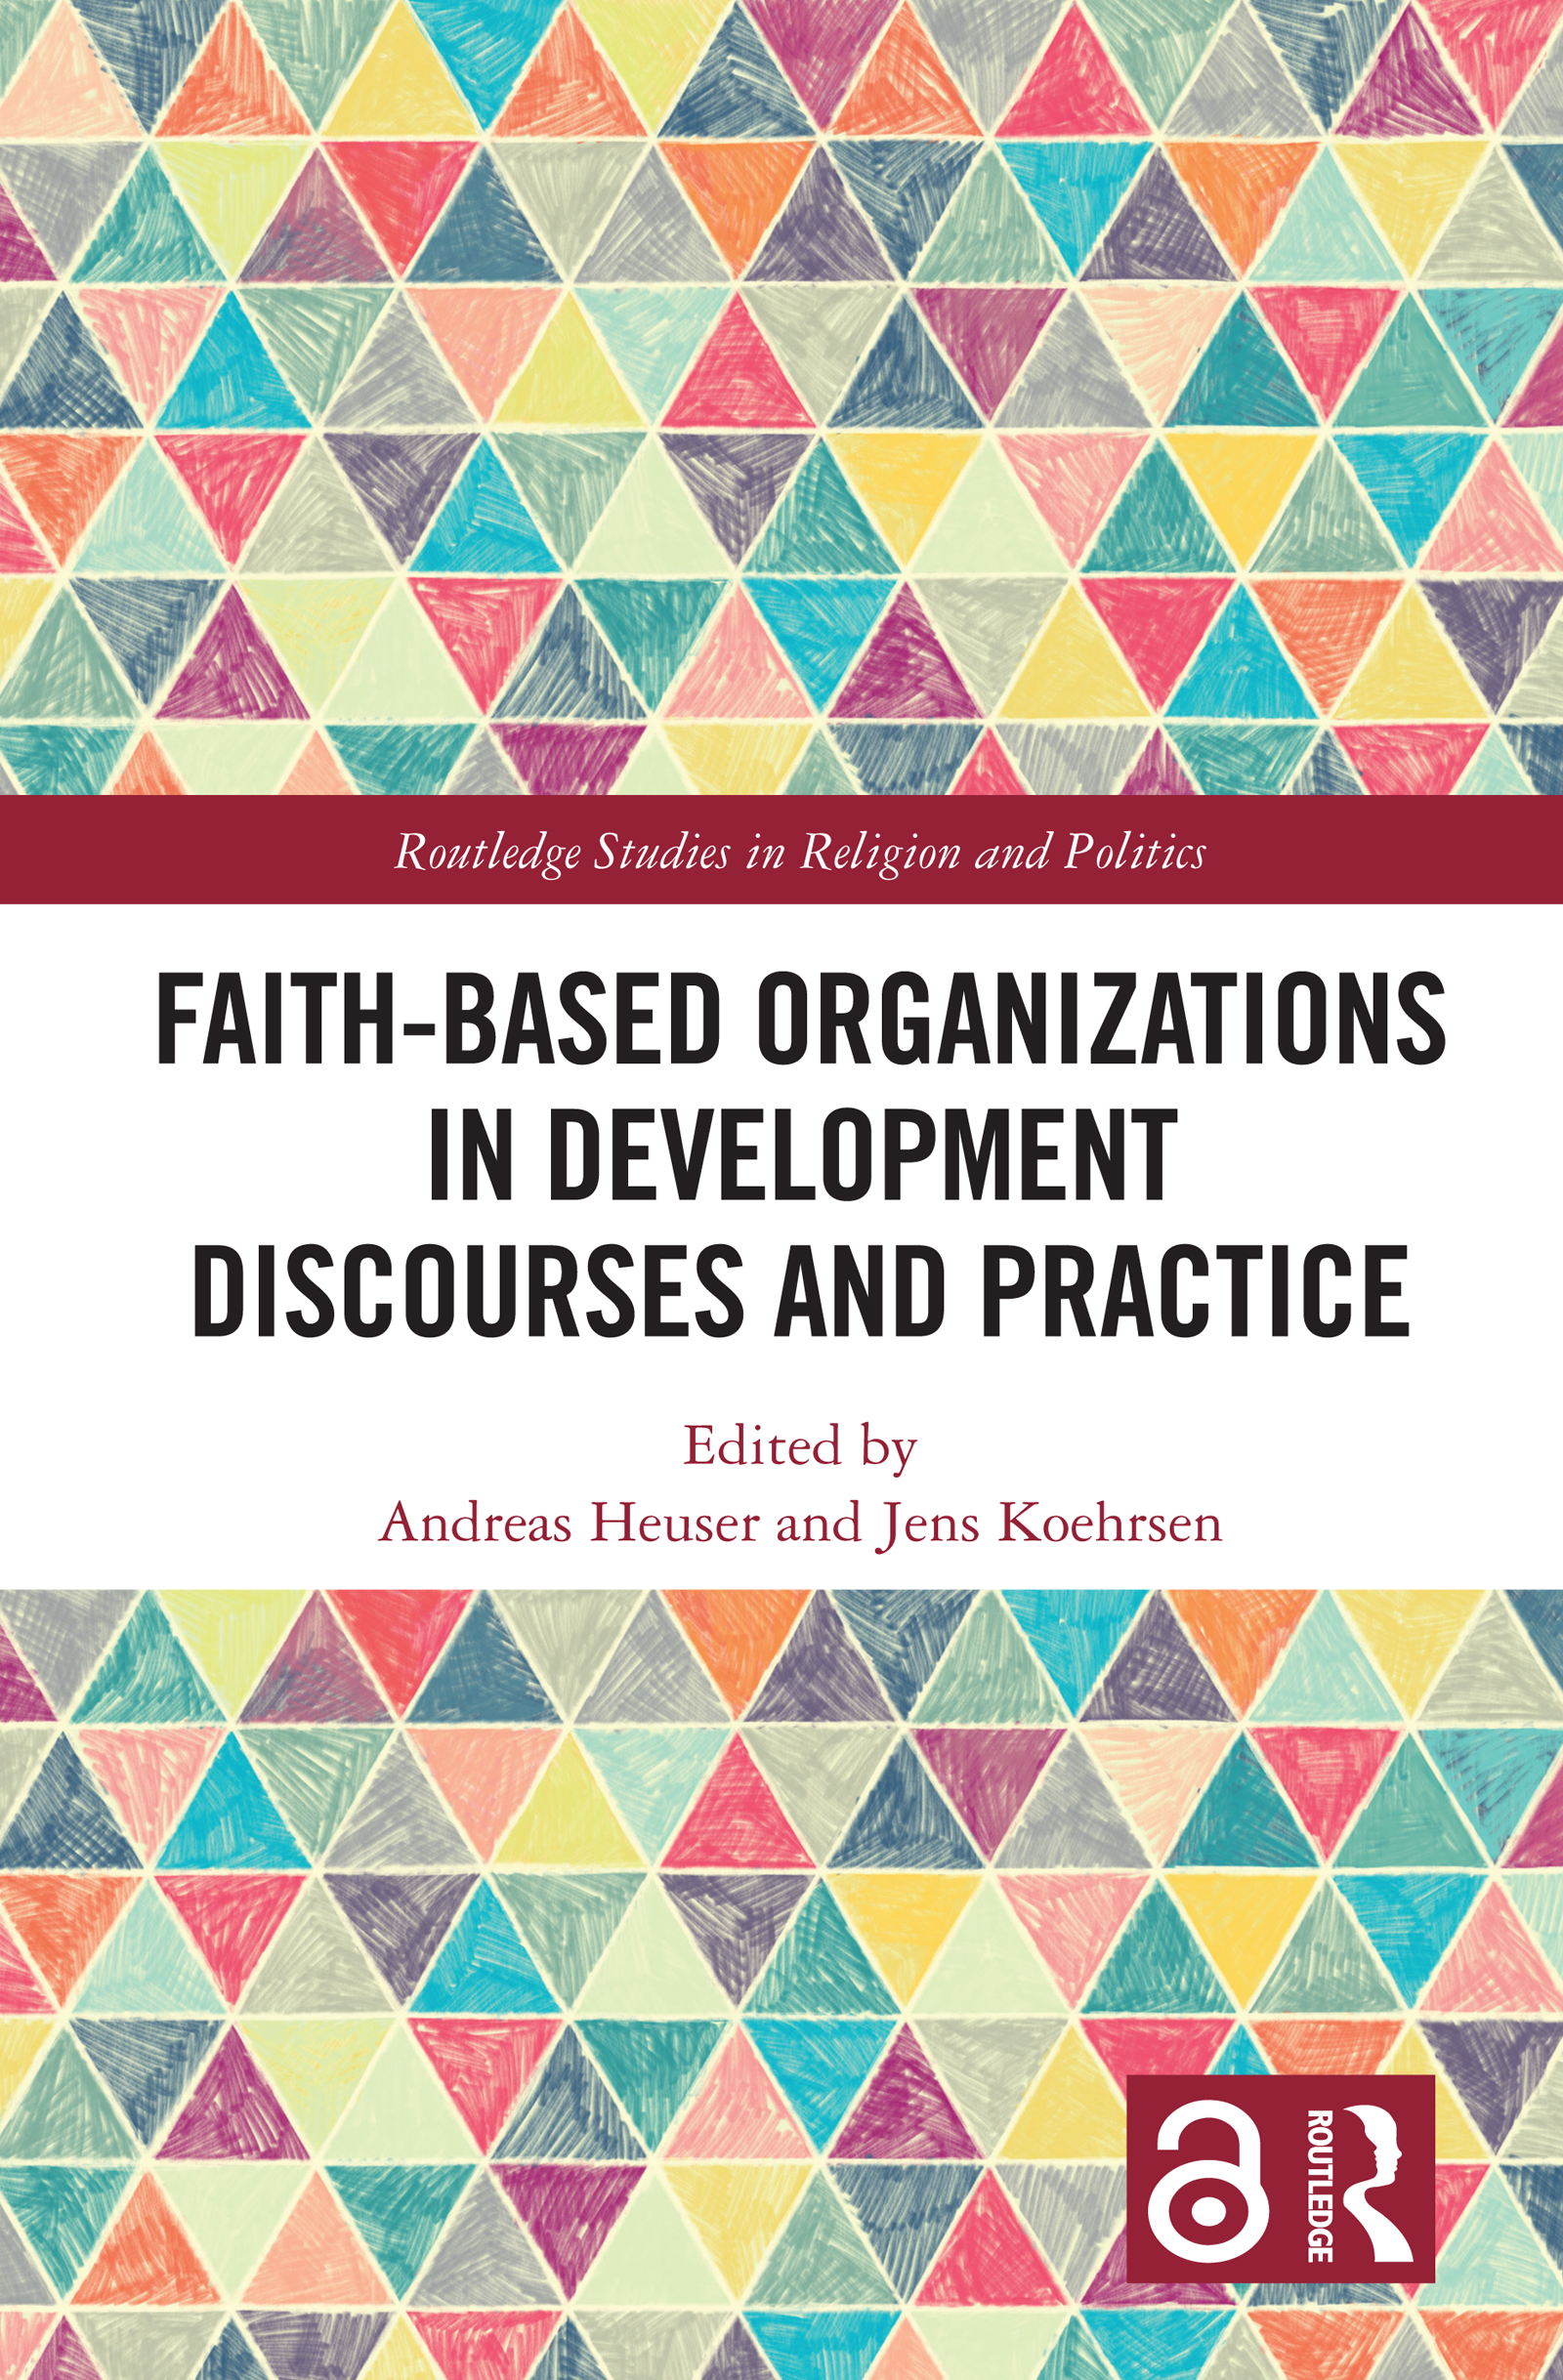 Faith-Based Organizations in Development Discourses and Practice